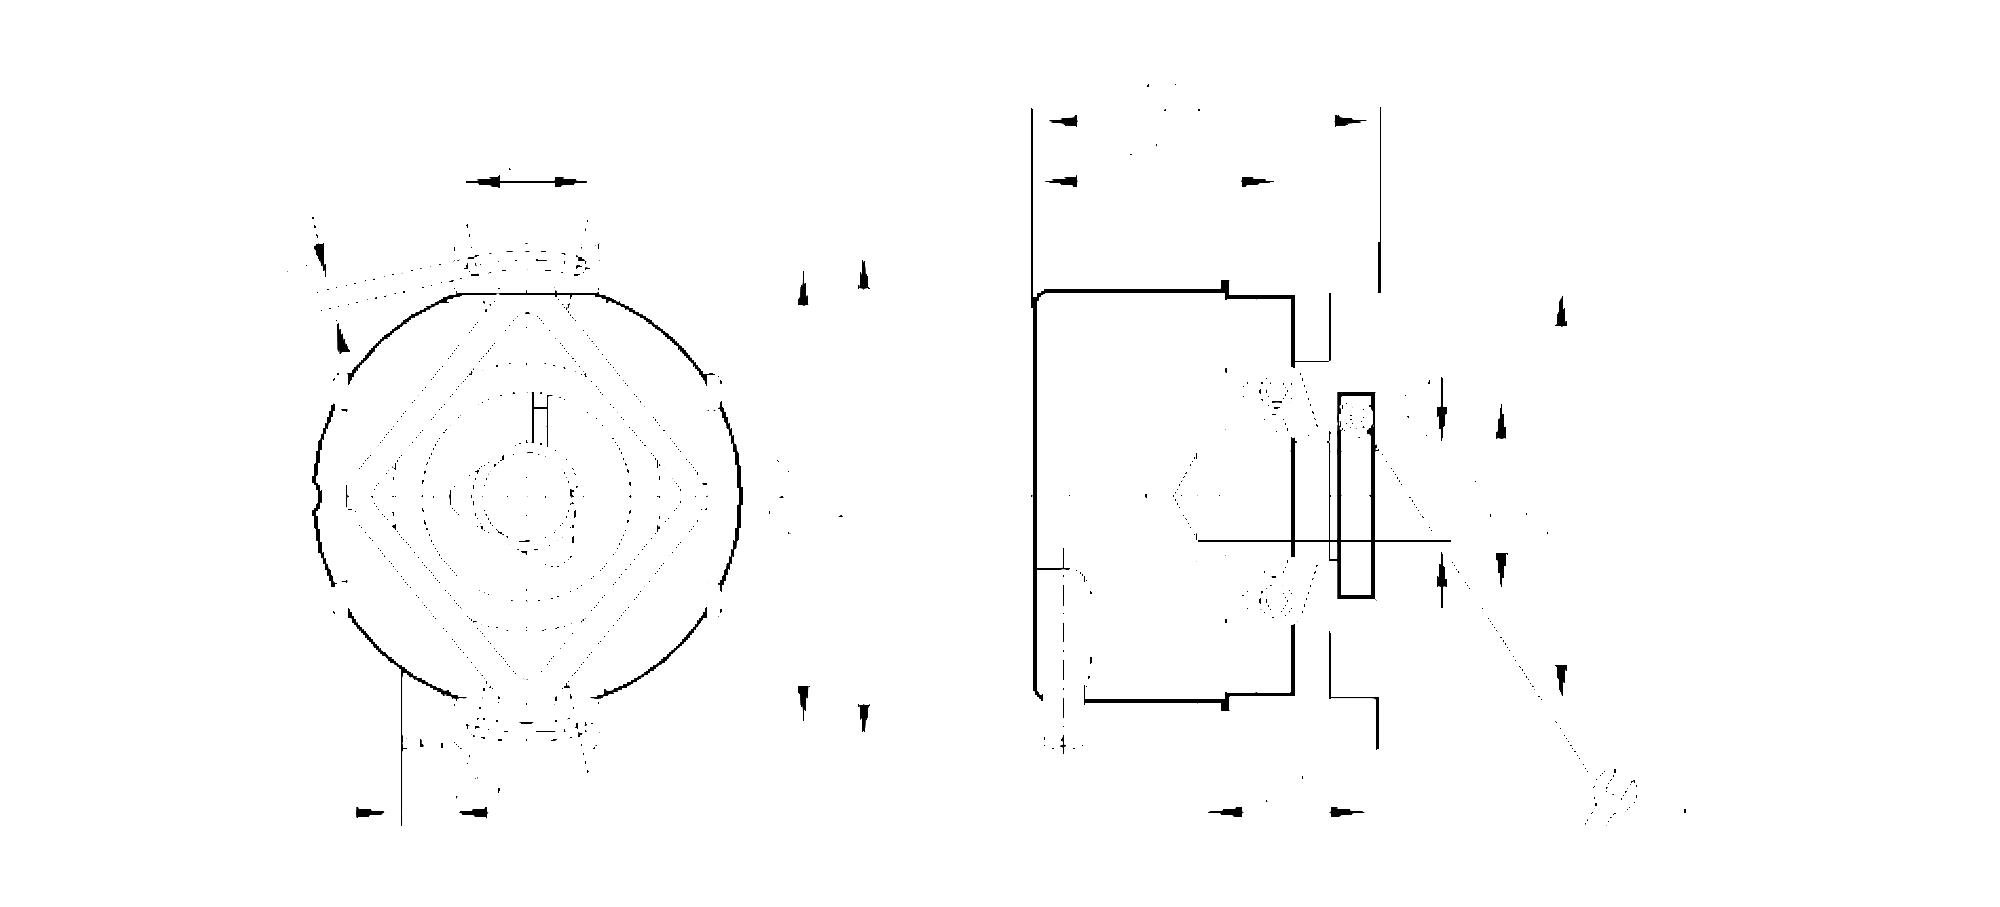 ro6345 - incremental encoder with hollow shaft